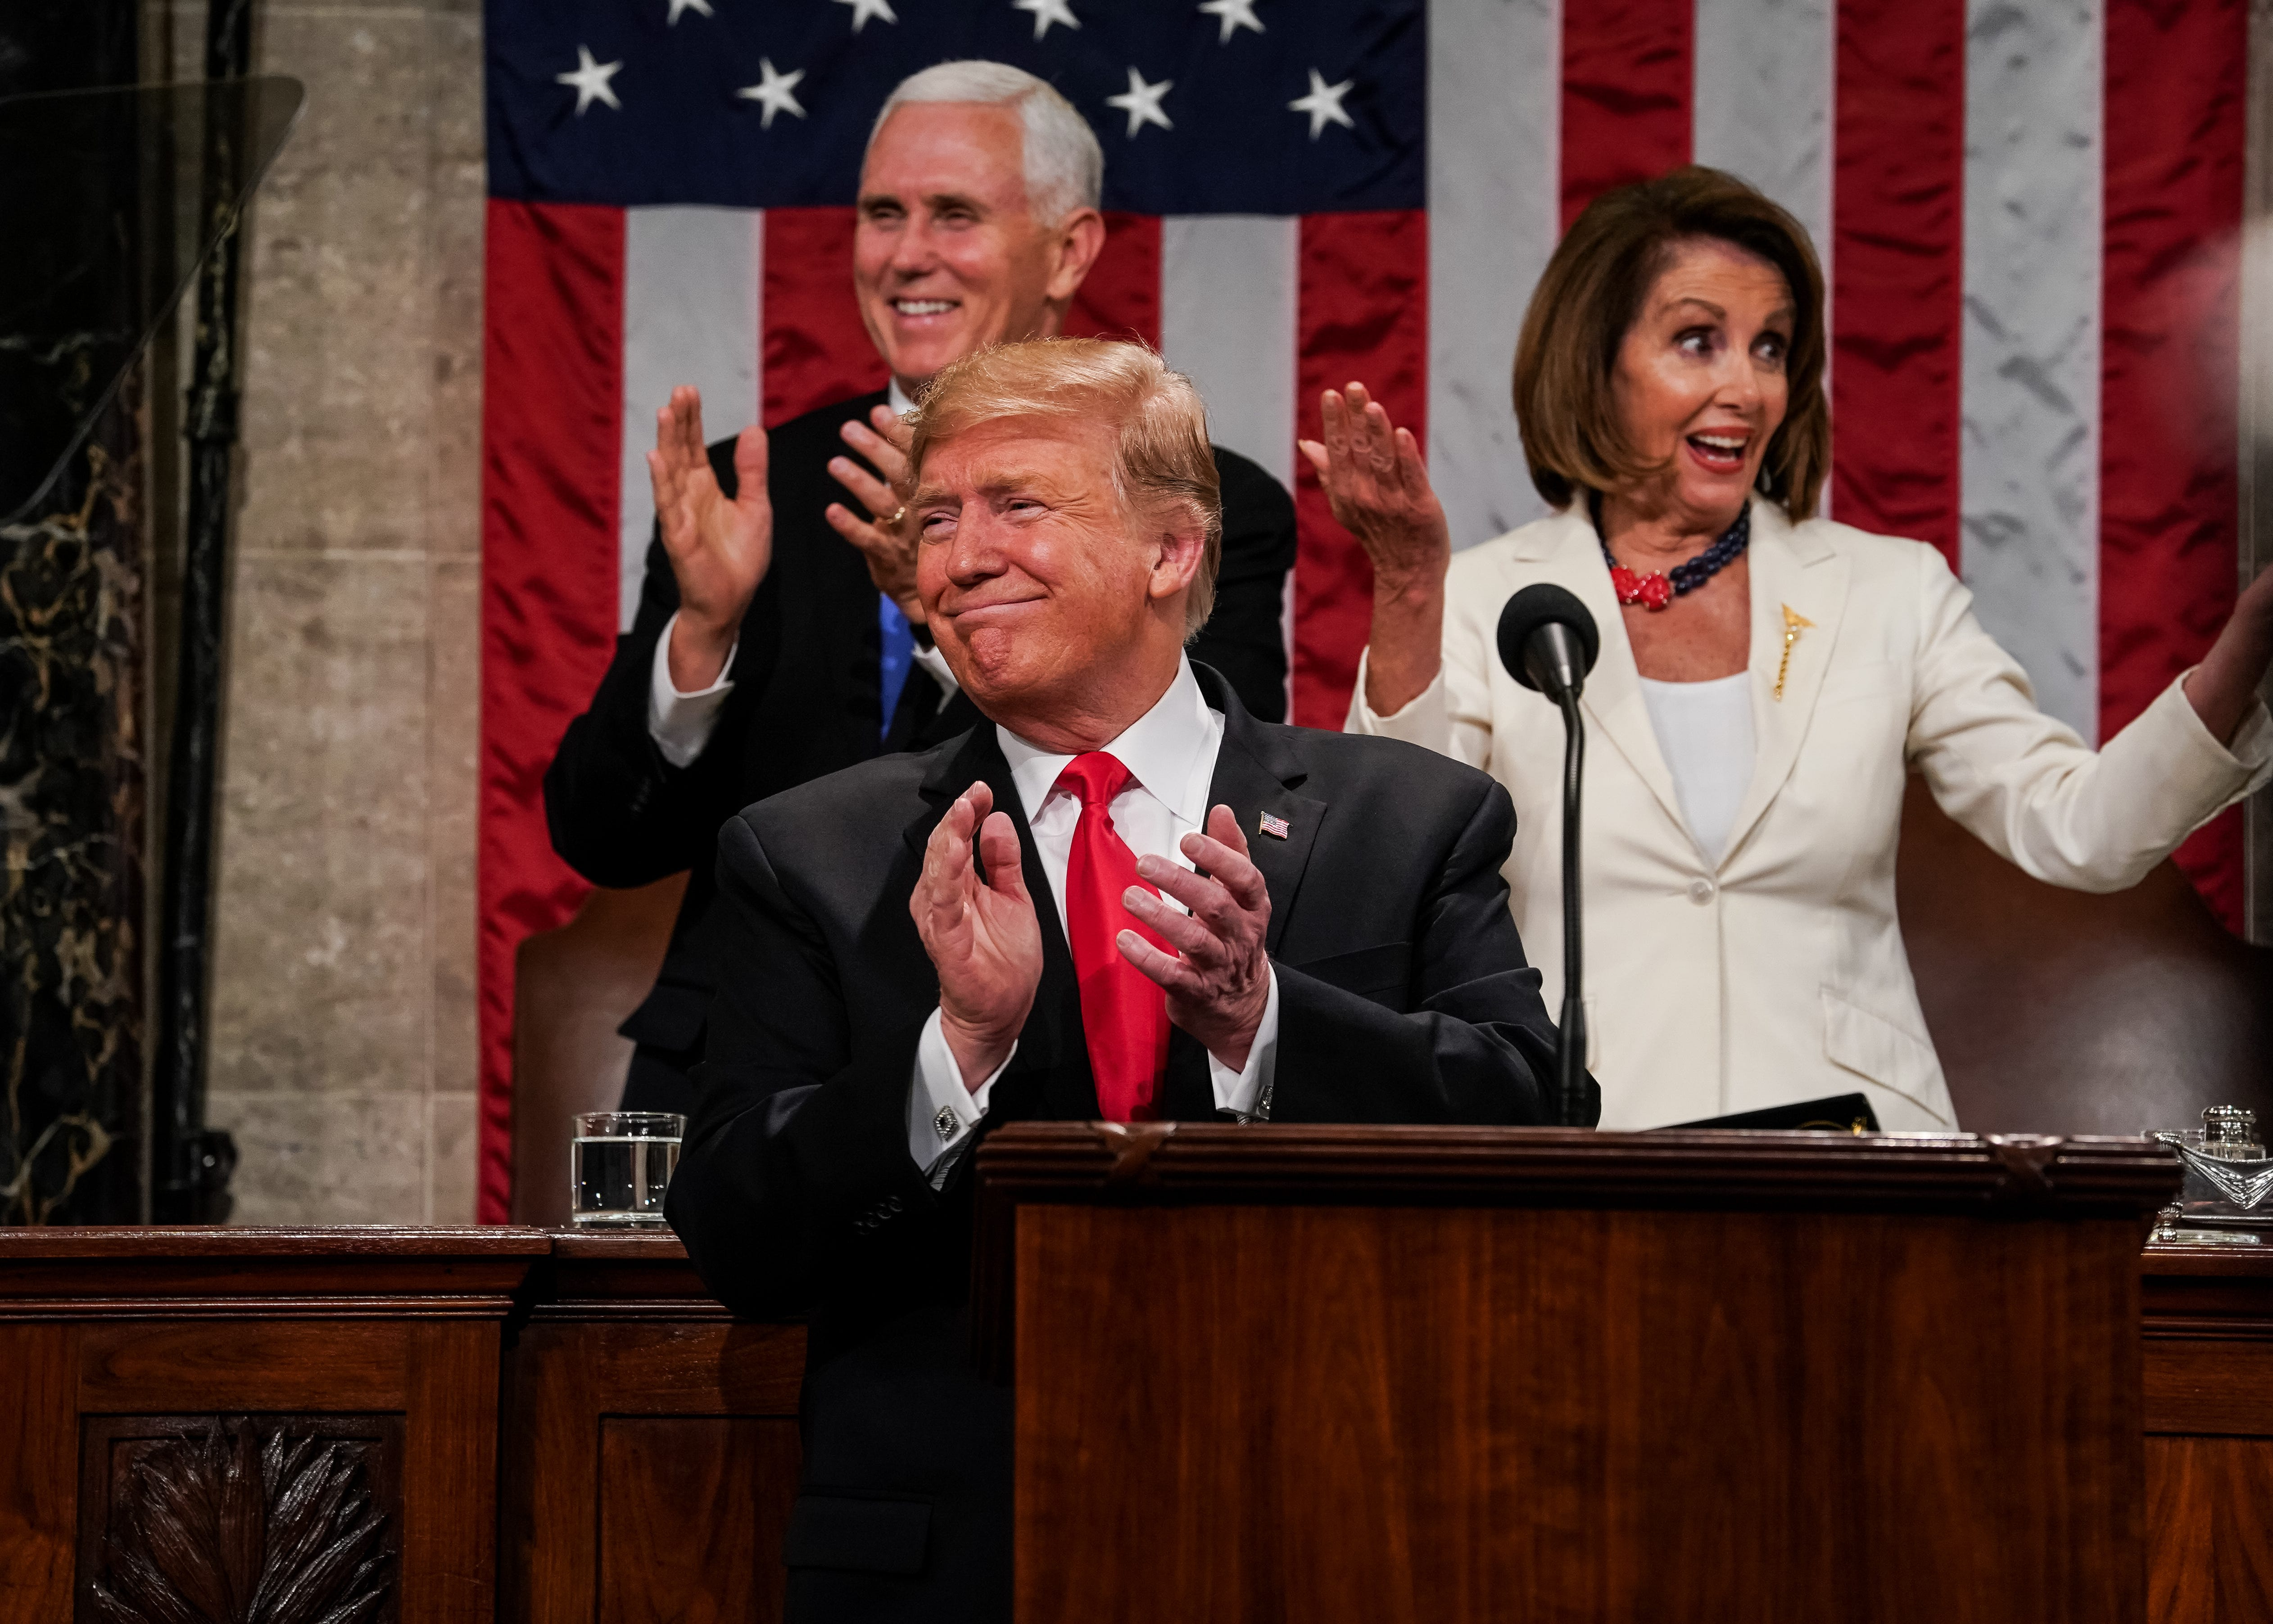 President Donald Trump, Speaker Nancy Pelosi and Vice President Mike Pence applaud during the State of the Union address in the chamber of the U.S. House of Representatives at the U.S. Capitol .